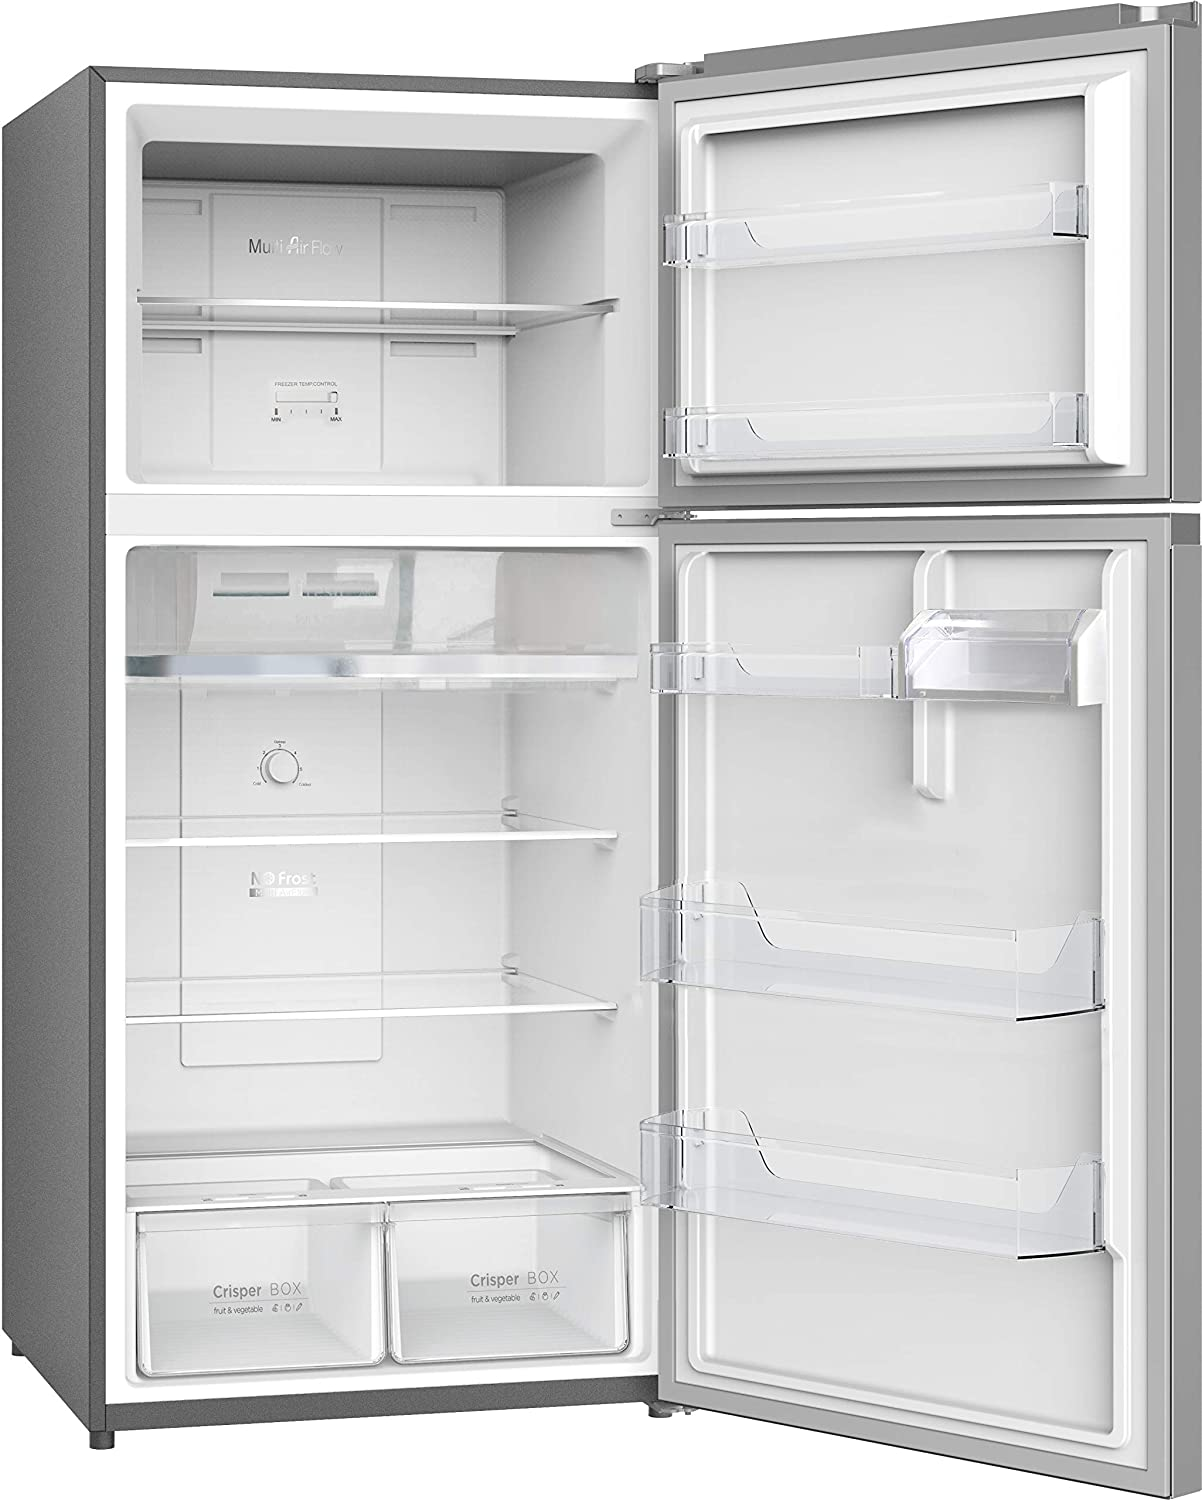 LG 547 L 3 Star Wi-Fi Inverter Frost-Free Double Door Refrigerator (GN-H702HLHQ, Shiny Steel)